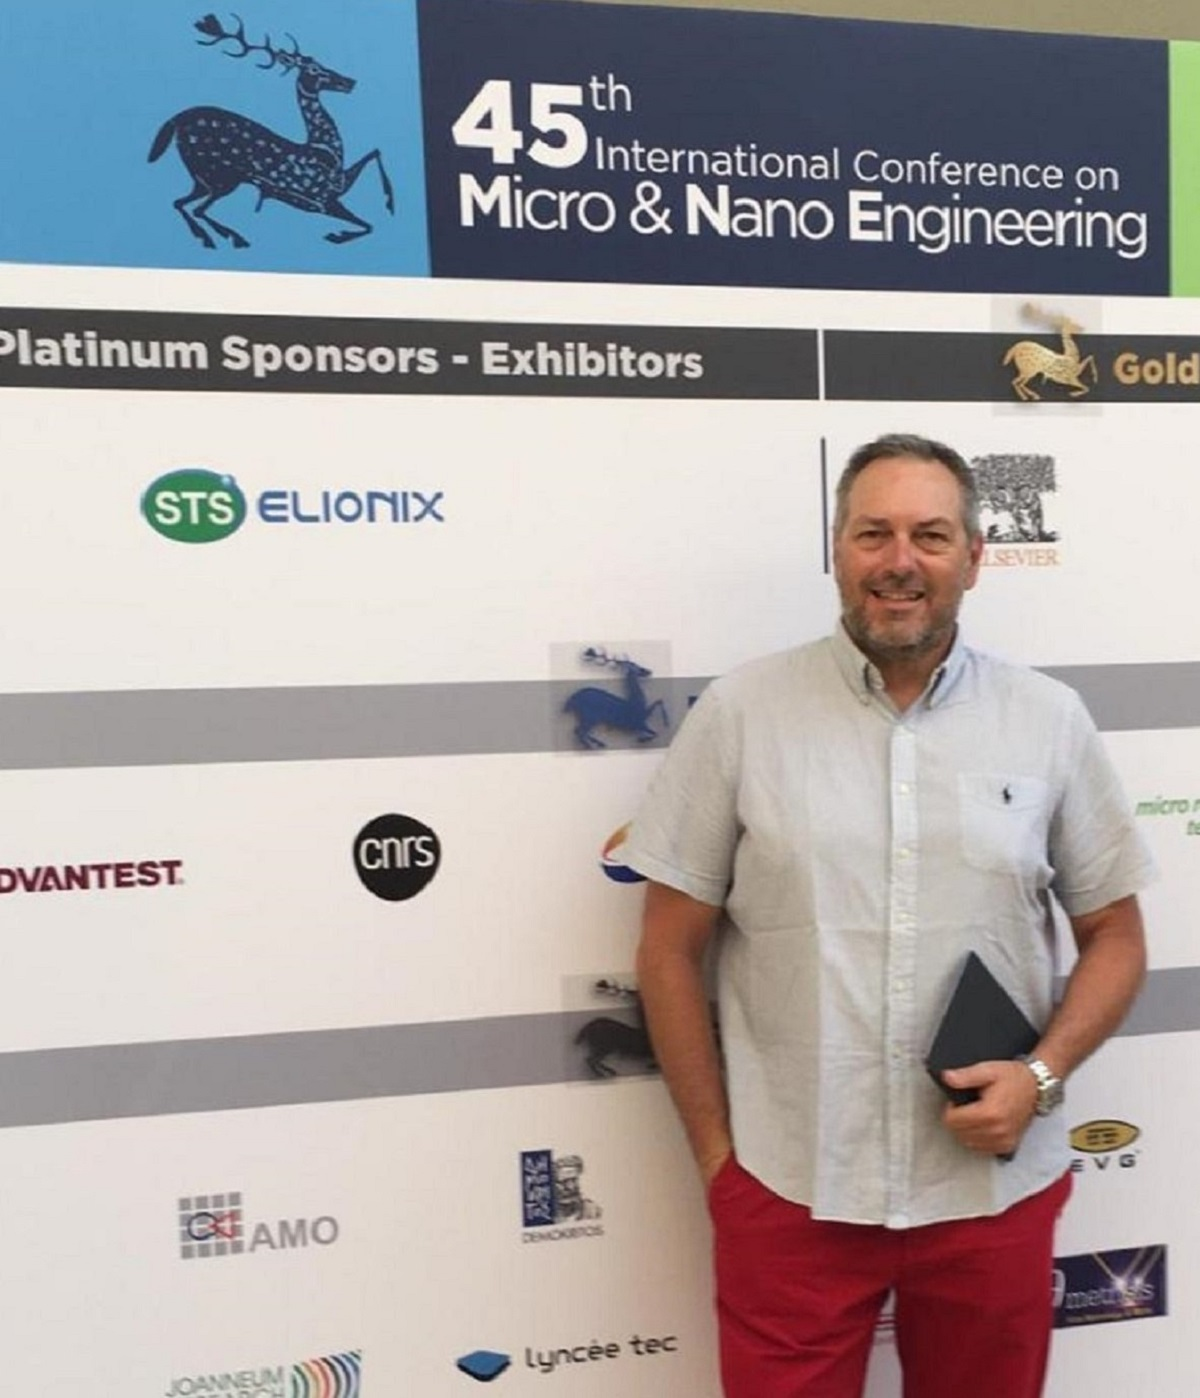 NanoWorld CEO Manfred Detterbeck in front of MNE 2019 conference entrance